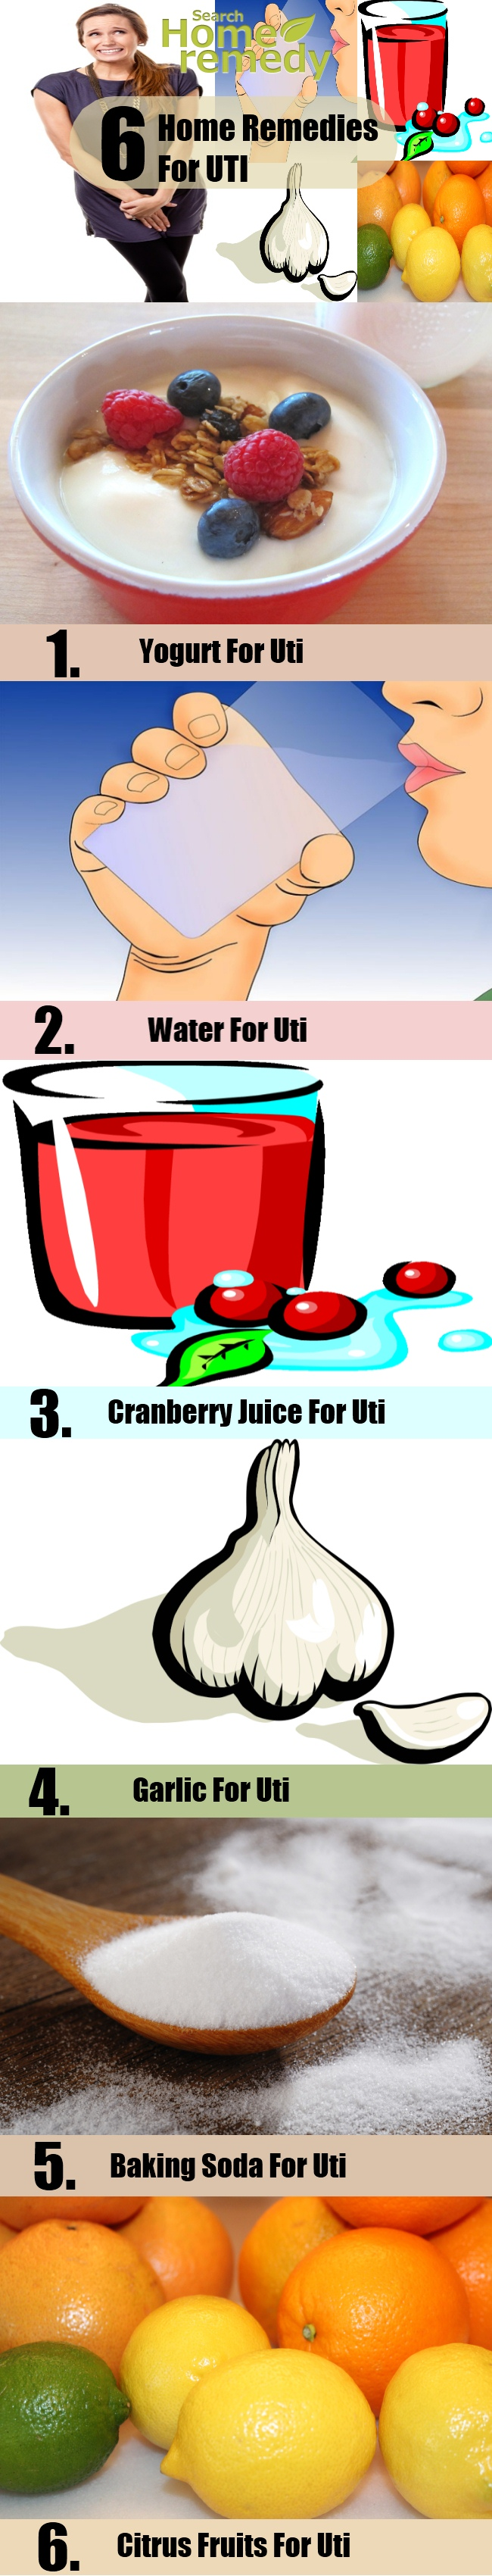 6 Home Remedies For UTI